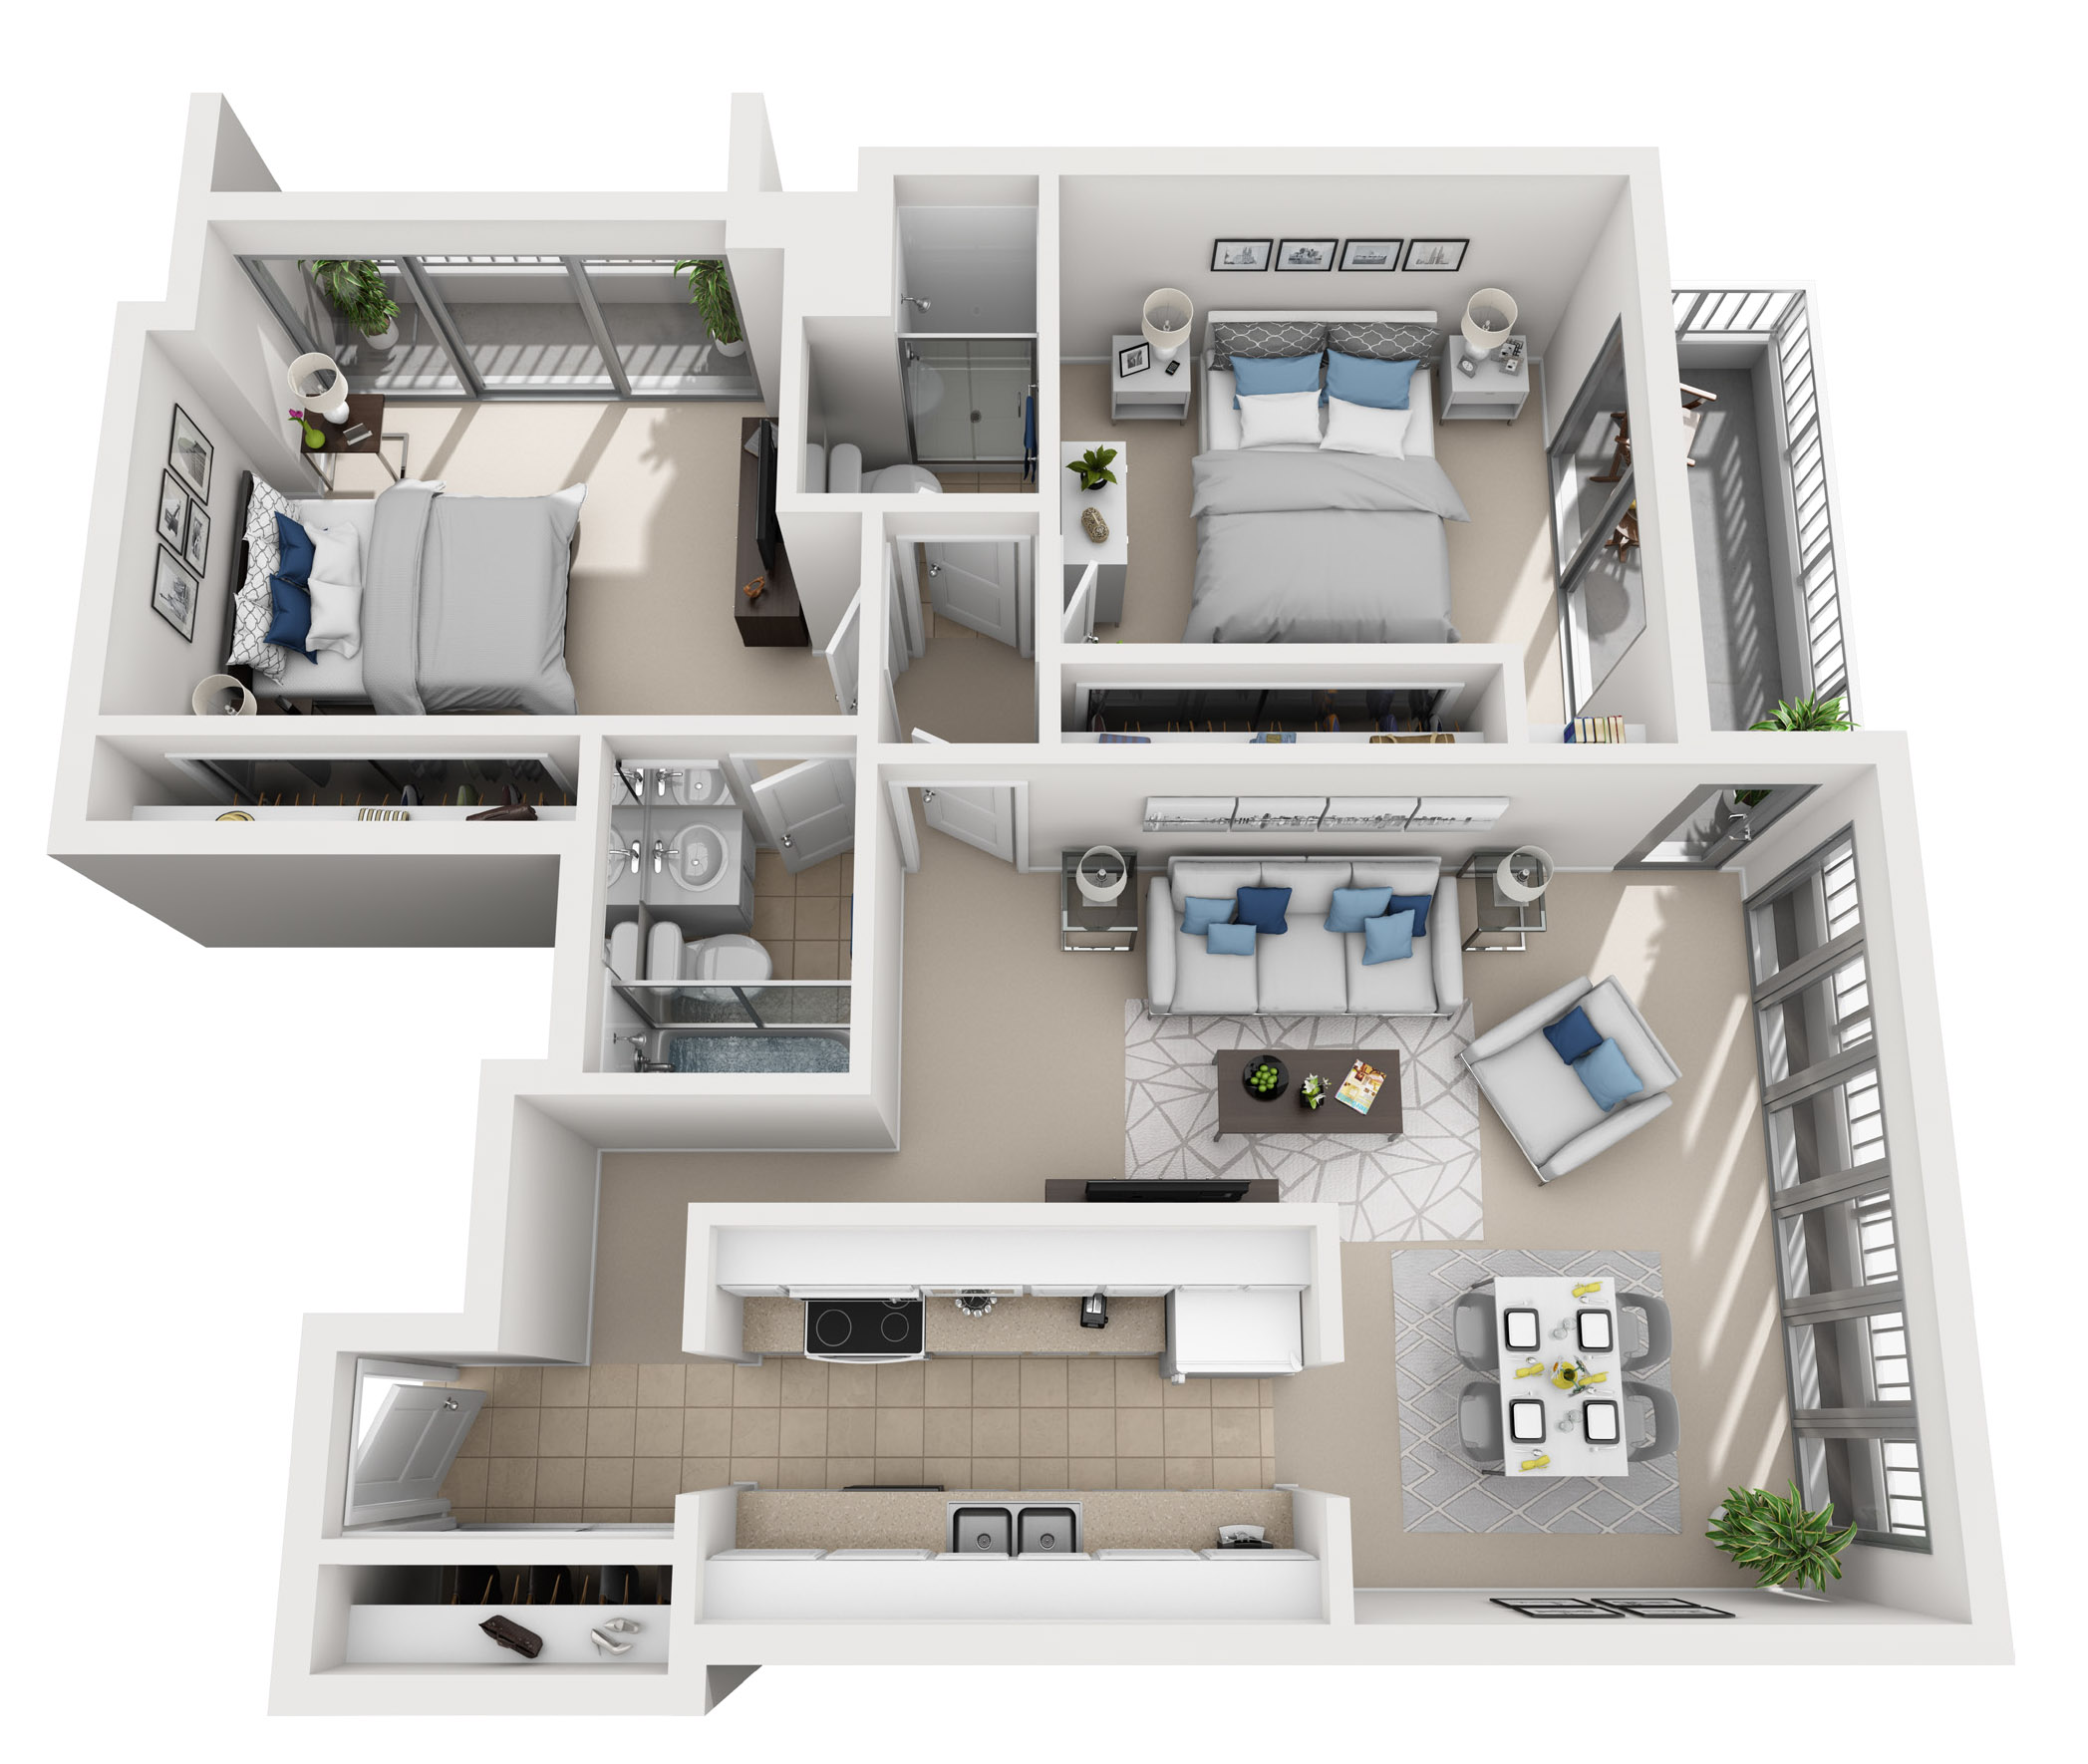 Model B - Two bedroom apartment floor plan at The Shores